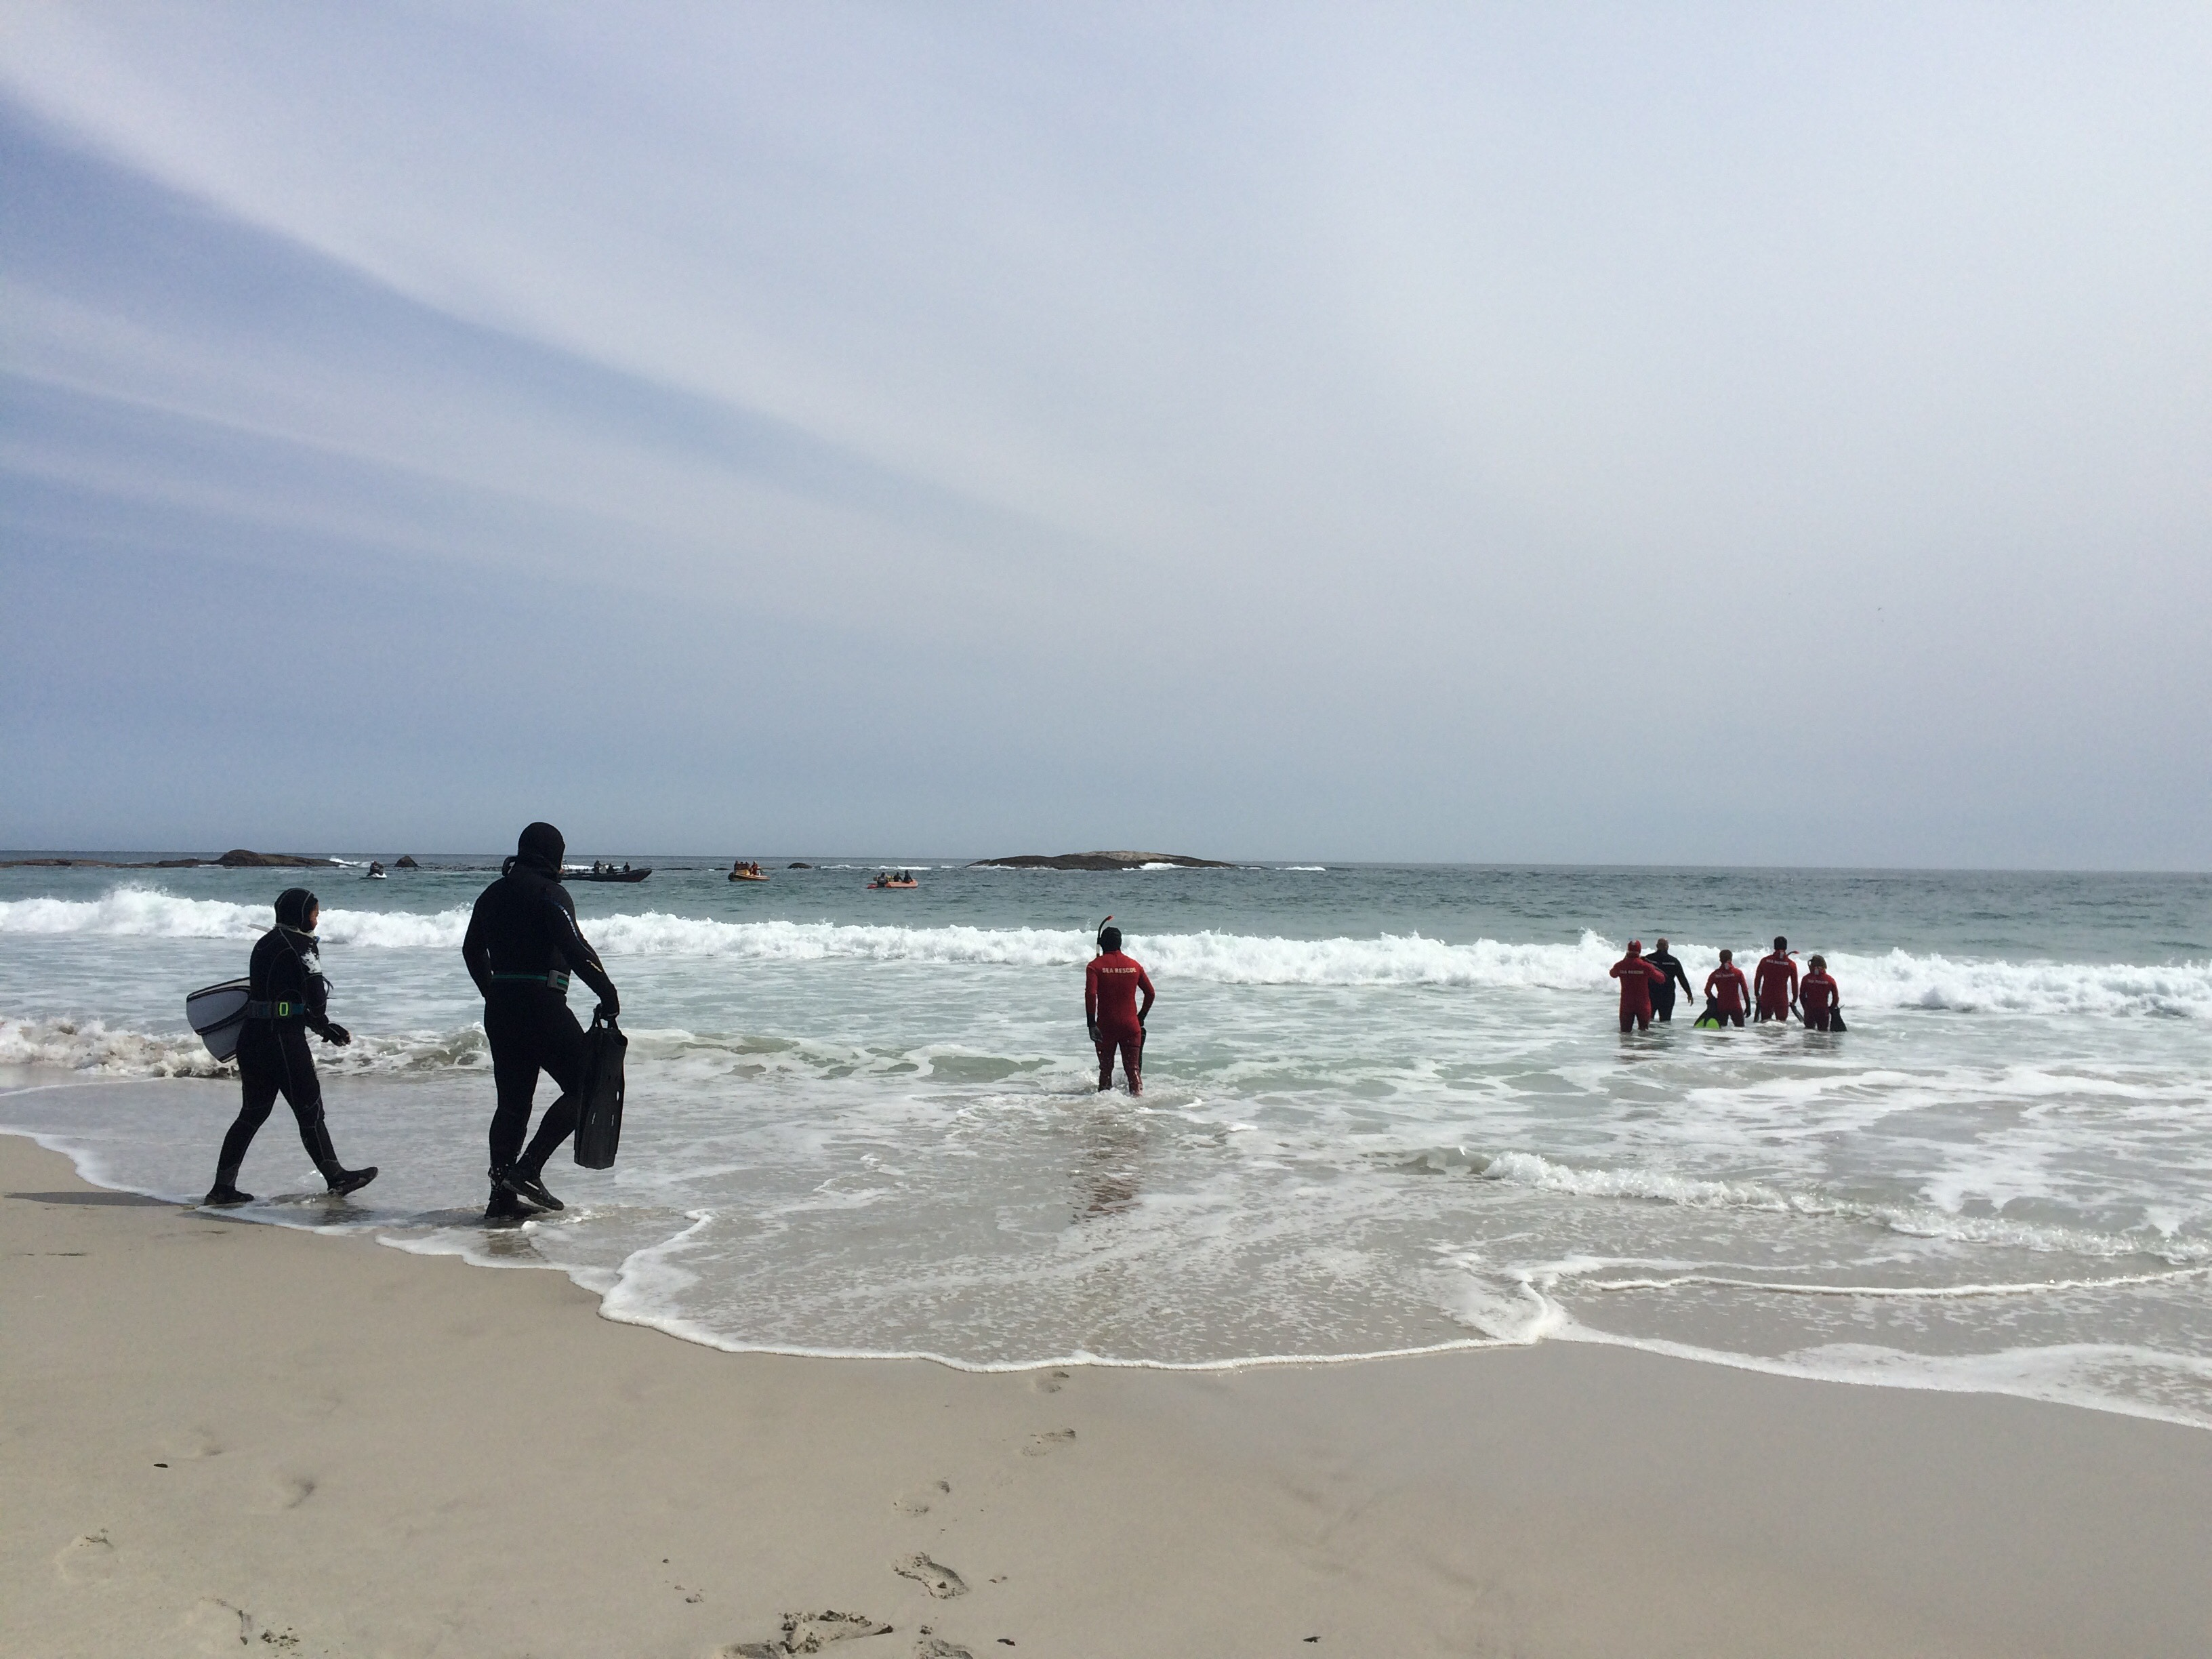 Swimmers and divers enter the water to search.